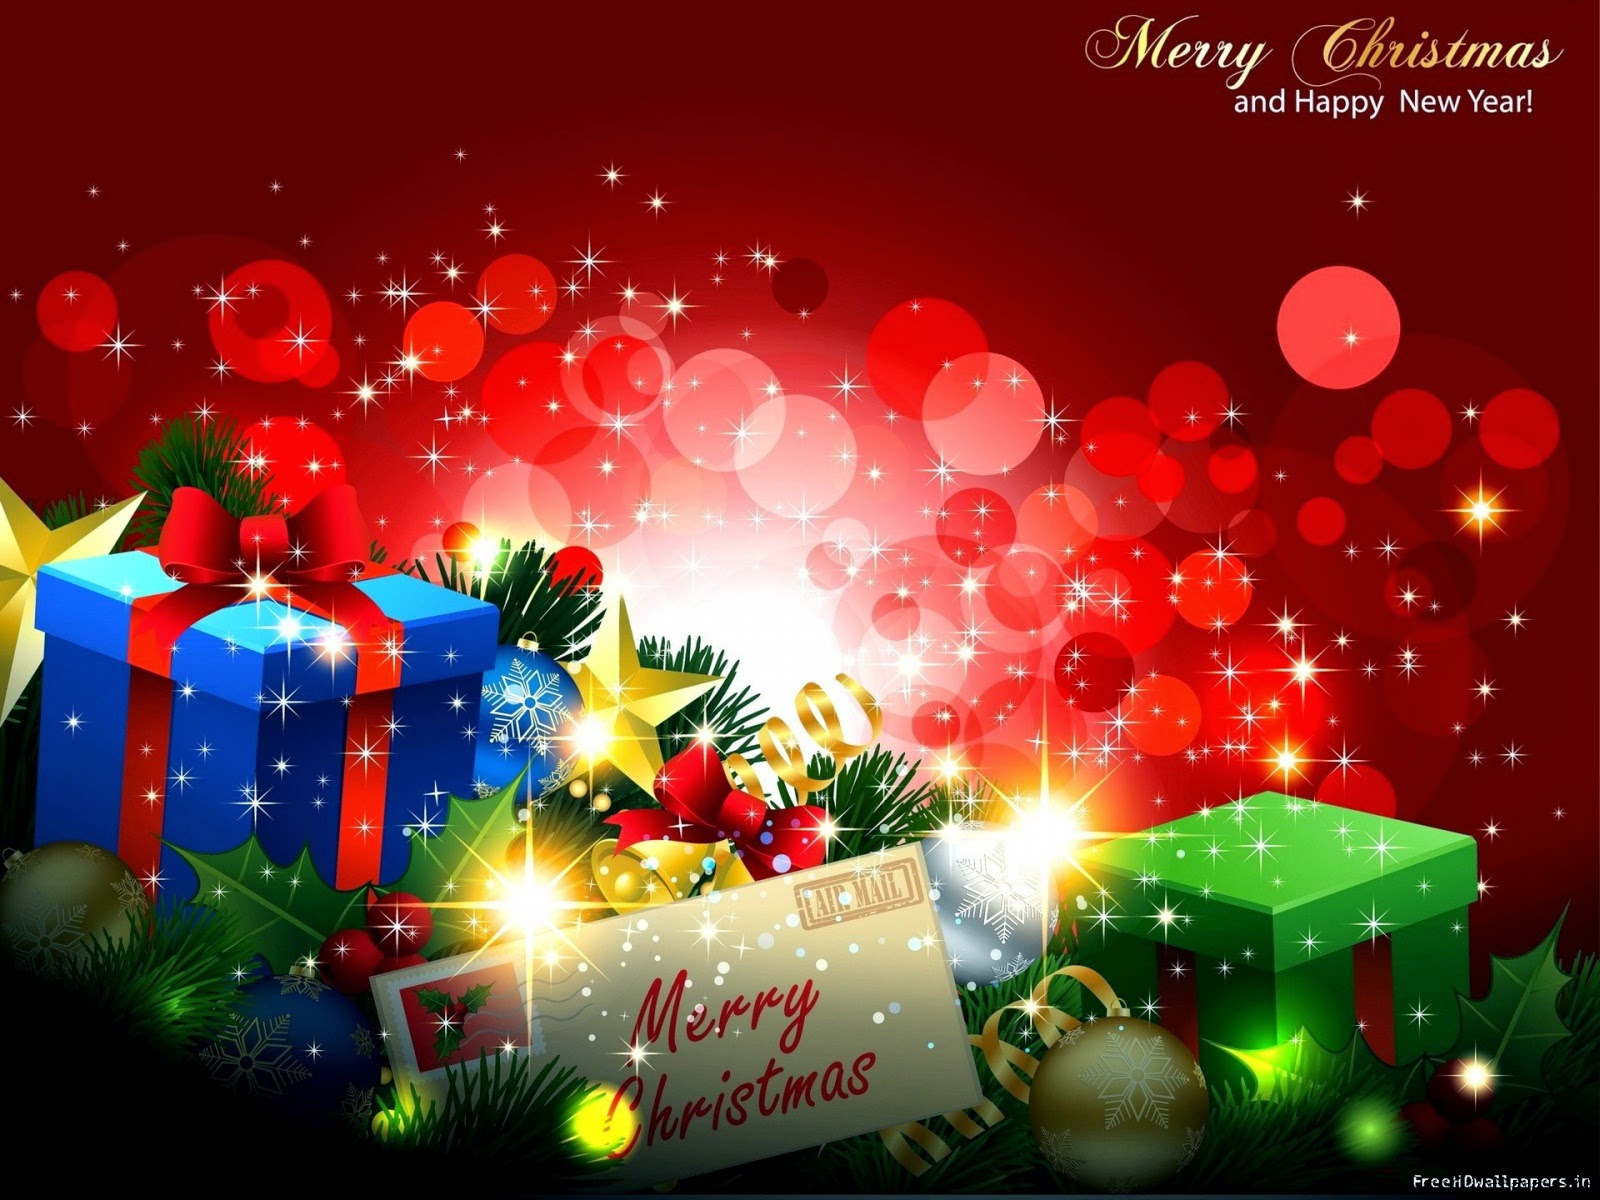 Results For Free Christmas And New Year Greetings 2015